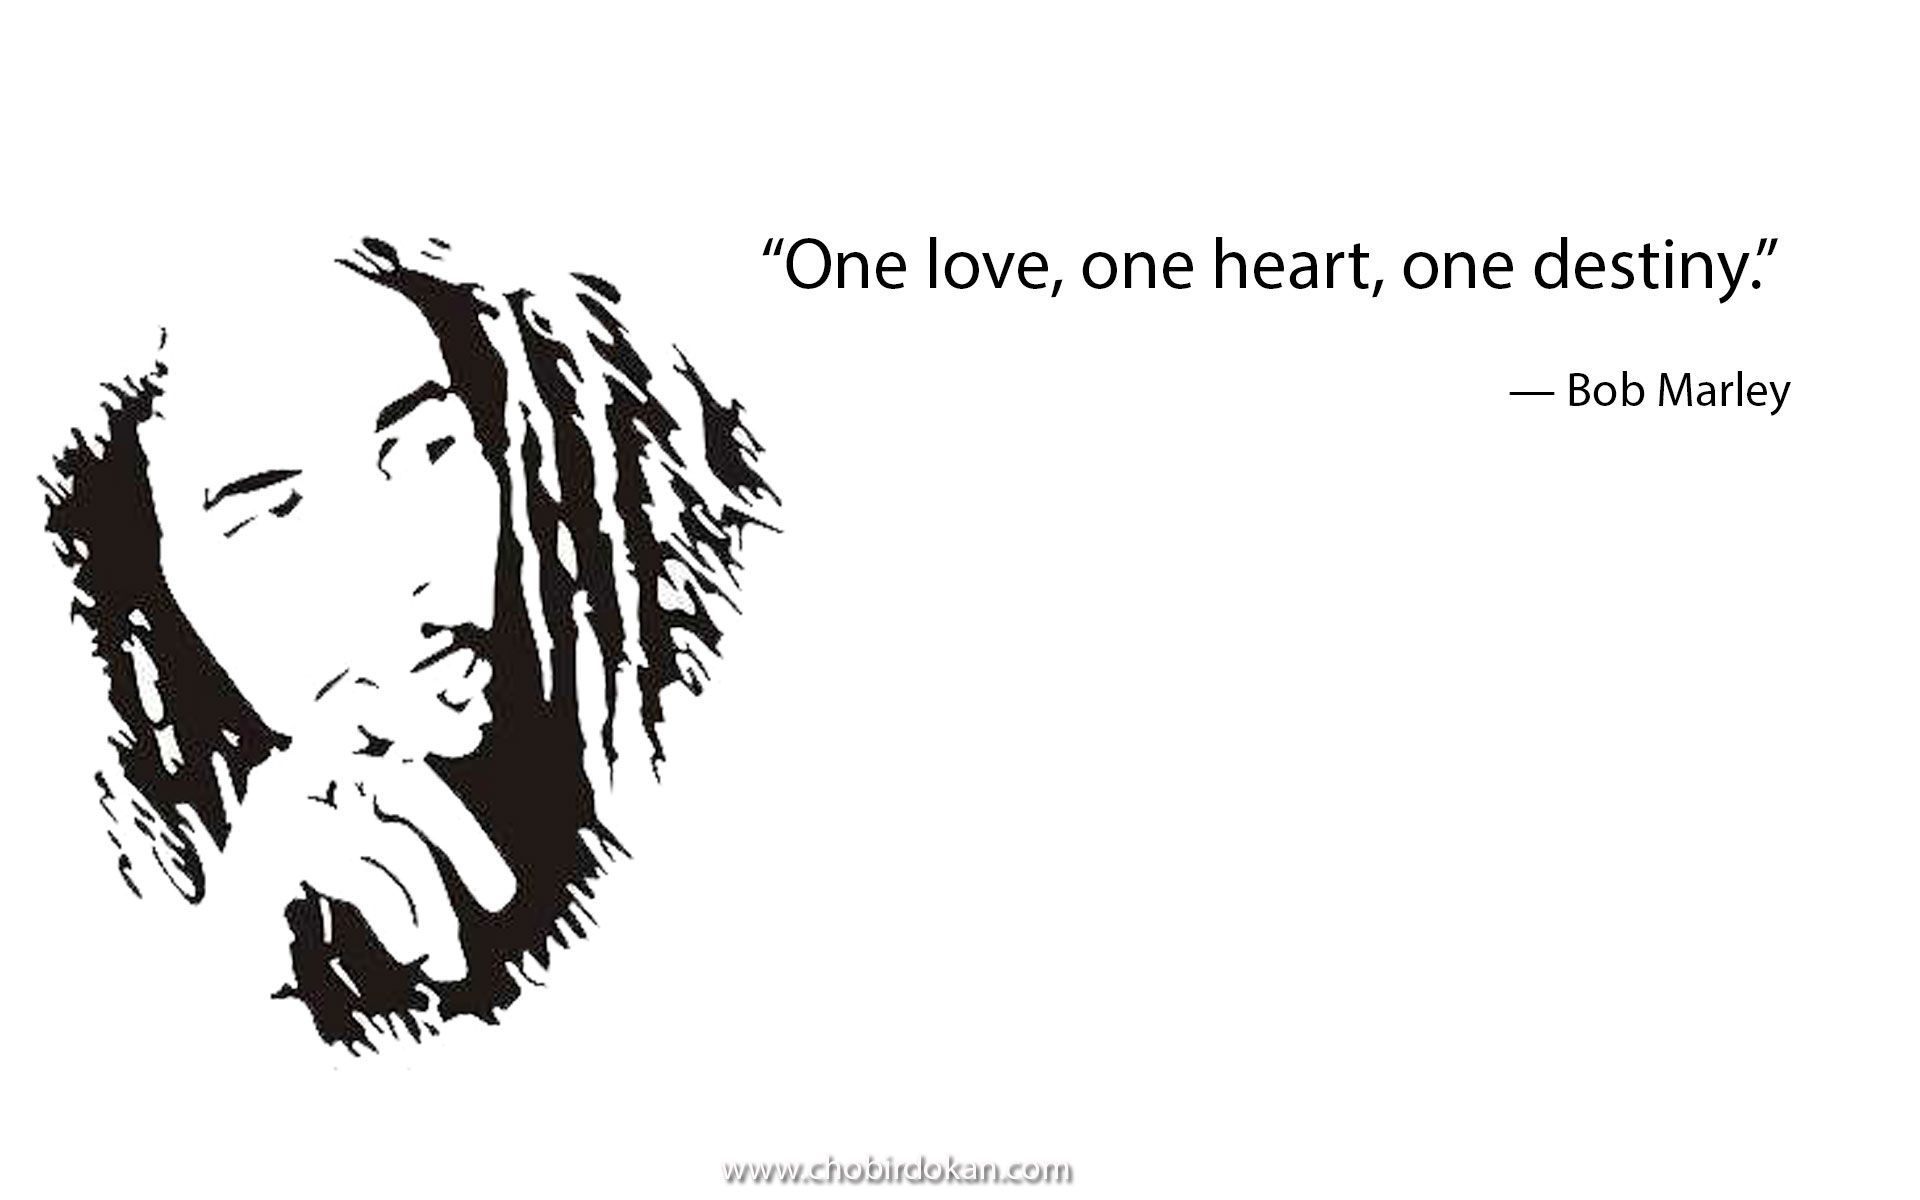 Famous Quotes About Love And Friendship Famous Quotes Bob Marley  Cute Romantic & Sad Love Quotes Images